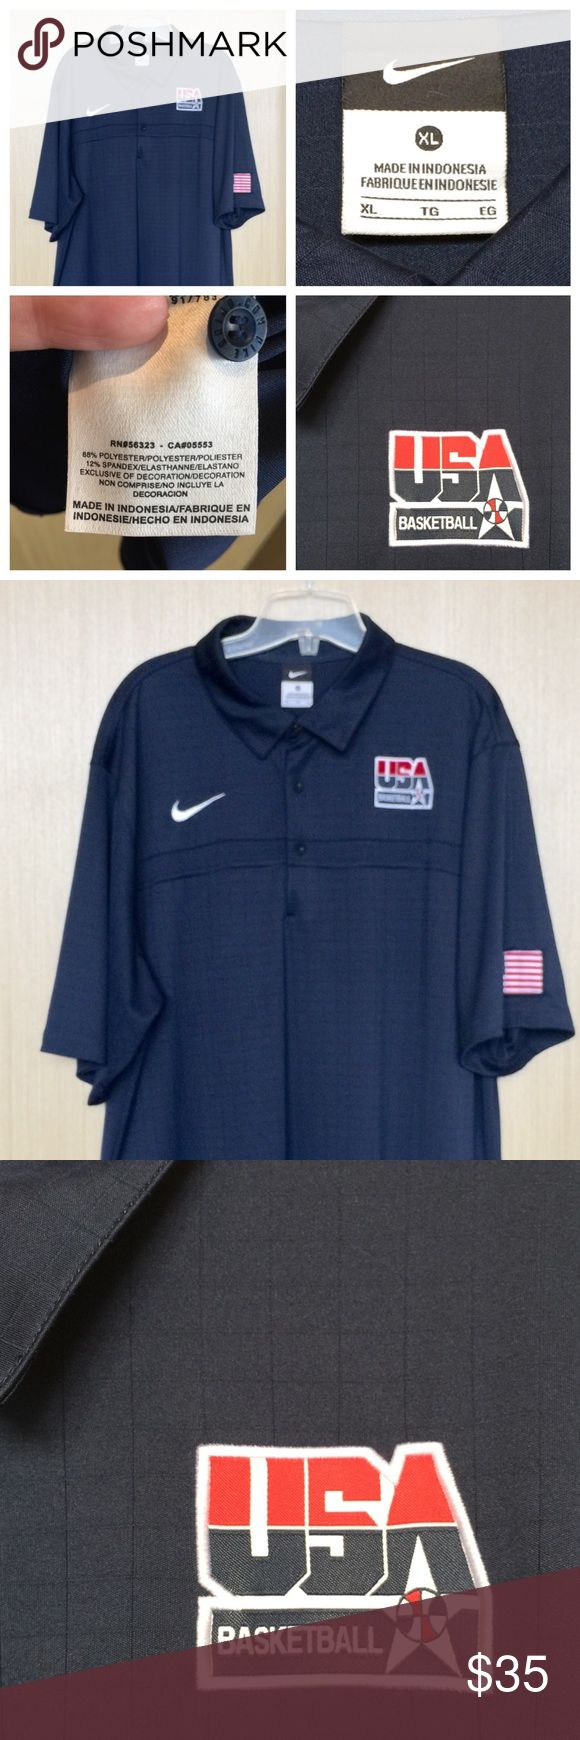 Official Nike USA Basketball Polo   Get ready to cheer the USA Basketball team on to GOLD at the OLYMPICS!   This official USA BASKETBALL Nike polo shirt was given to me by the women's team staff as a gift for some work I did for them at the World Championships in 2010 in the Czech Republic but I never wear it because the style doesn't suit me (I have other swag from them I like better)   This is a unisex XL polo shirt made of 88% Poly and 12% Spandex. NO TRADES   Free Beauty Sample With…